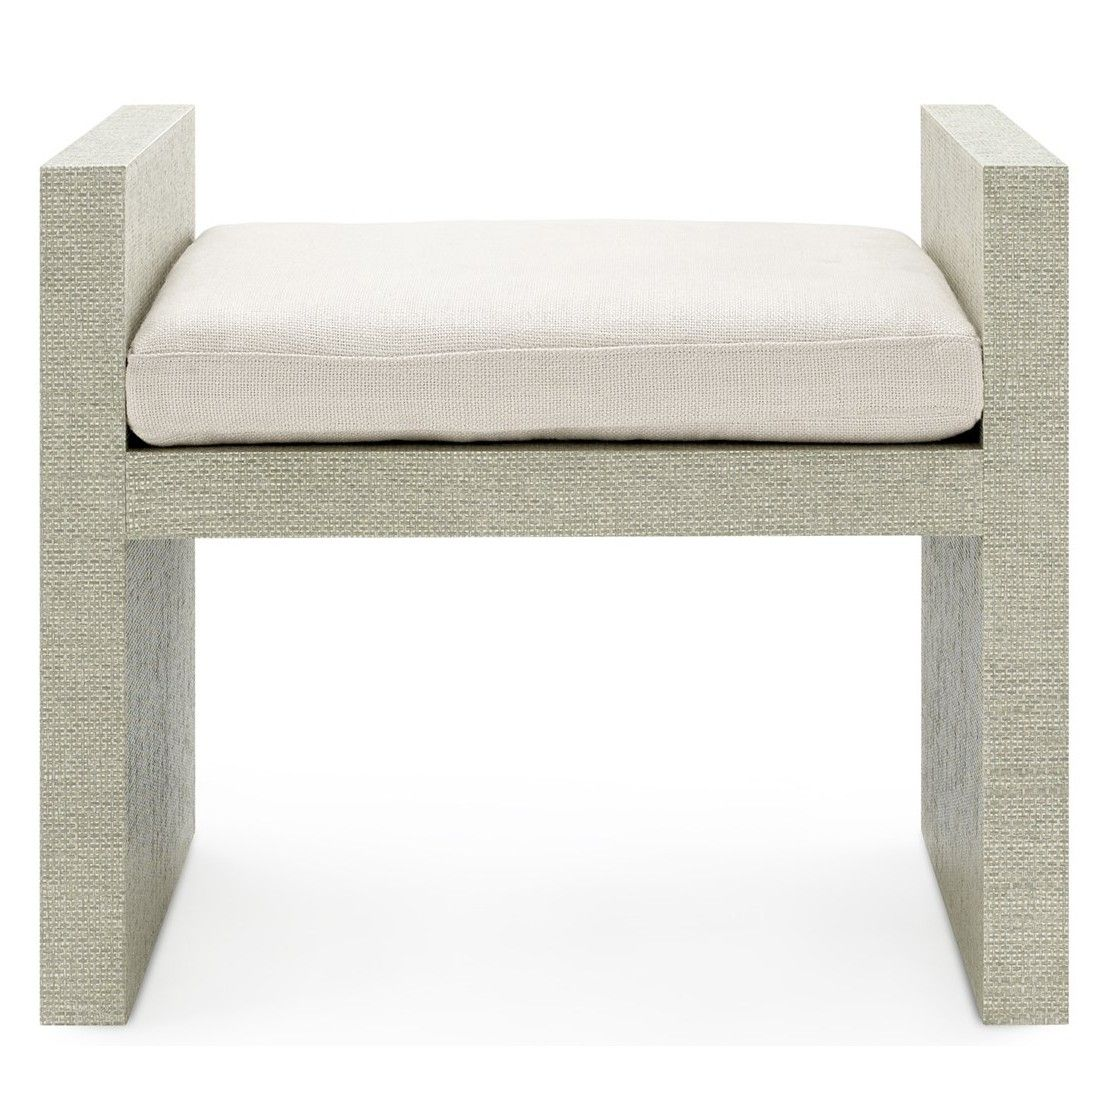 The HBench is a hard working design that references the